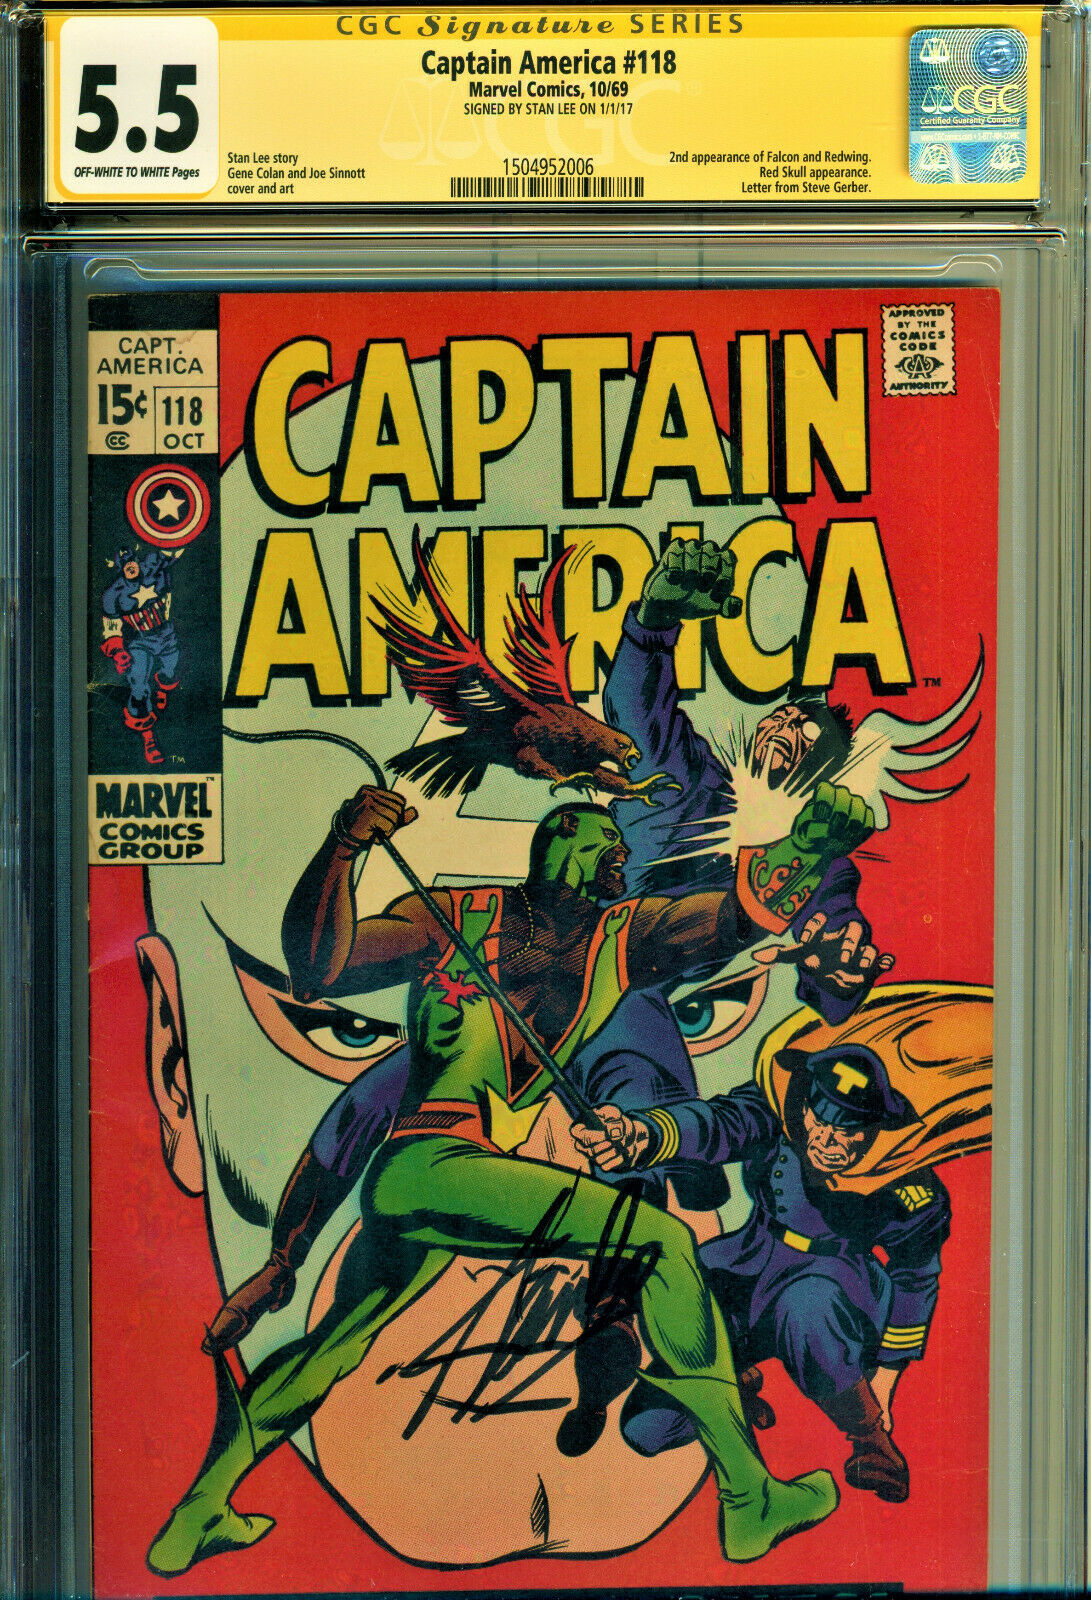 CAPTAIN AMERICA #118 CGC 5.5 SS SIGNED BY STAN LEE 2ND APP OF FALCON-RED SKULL